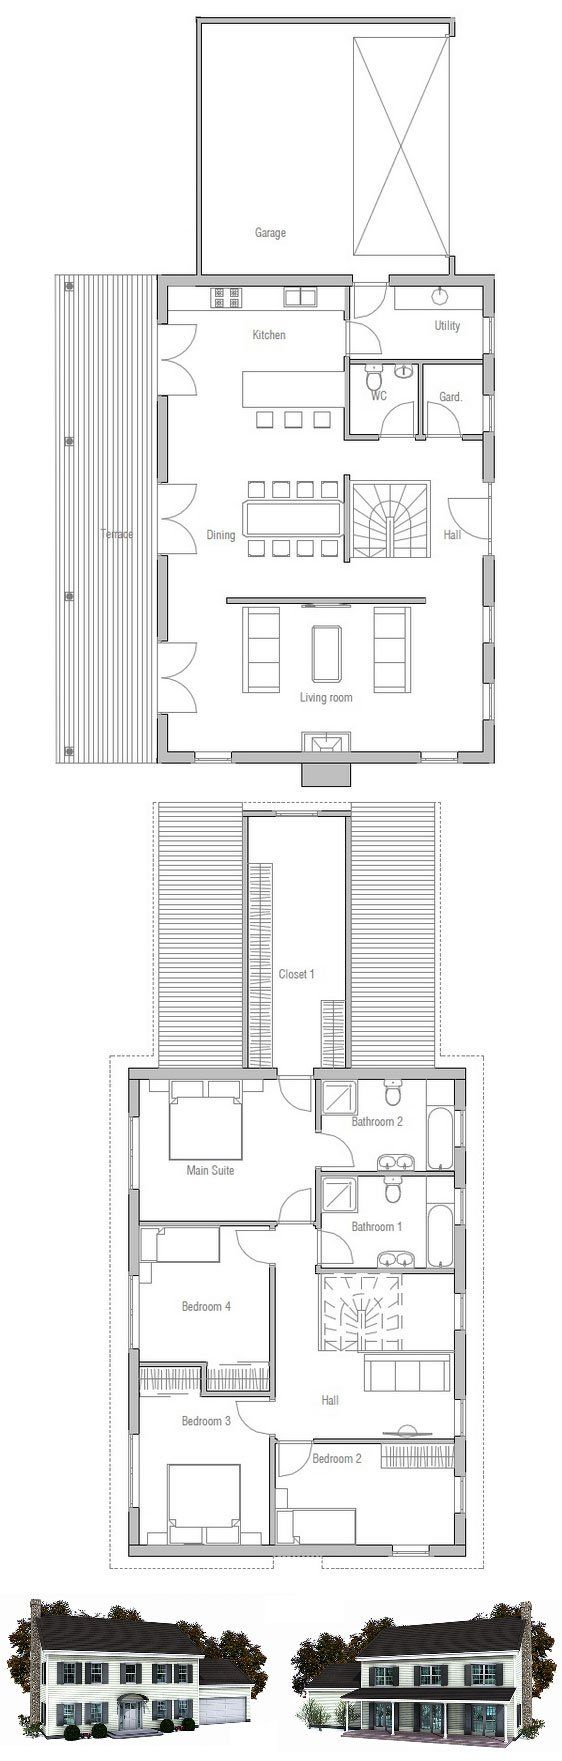 small colonial style house plan shapes lines symmetry are small colonial style house plan shapes lines symmetry are similar to typical colonial